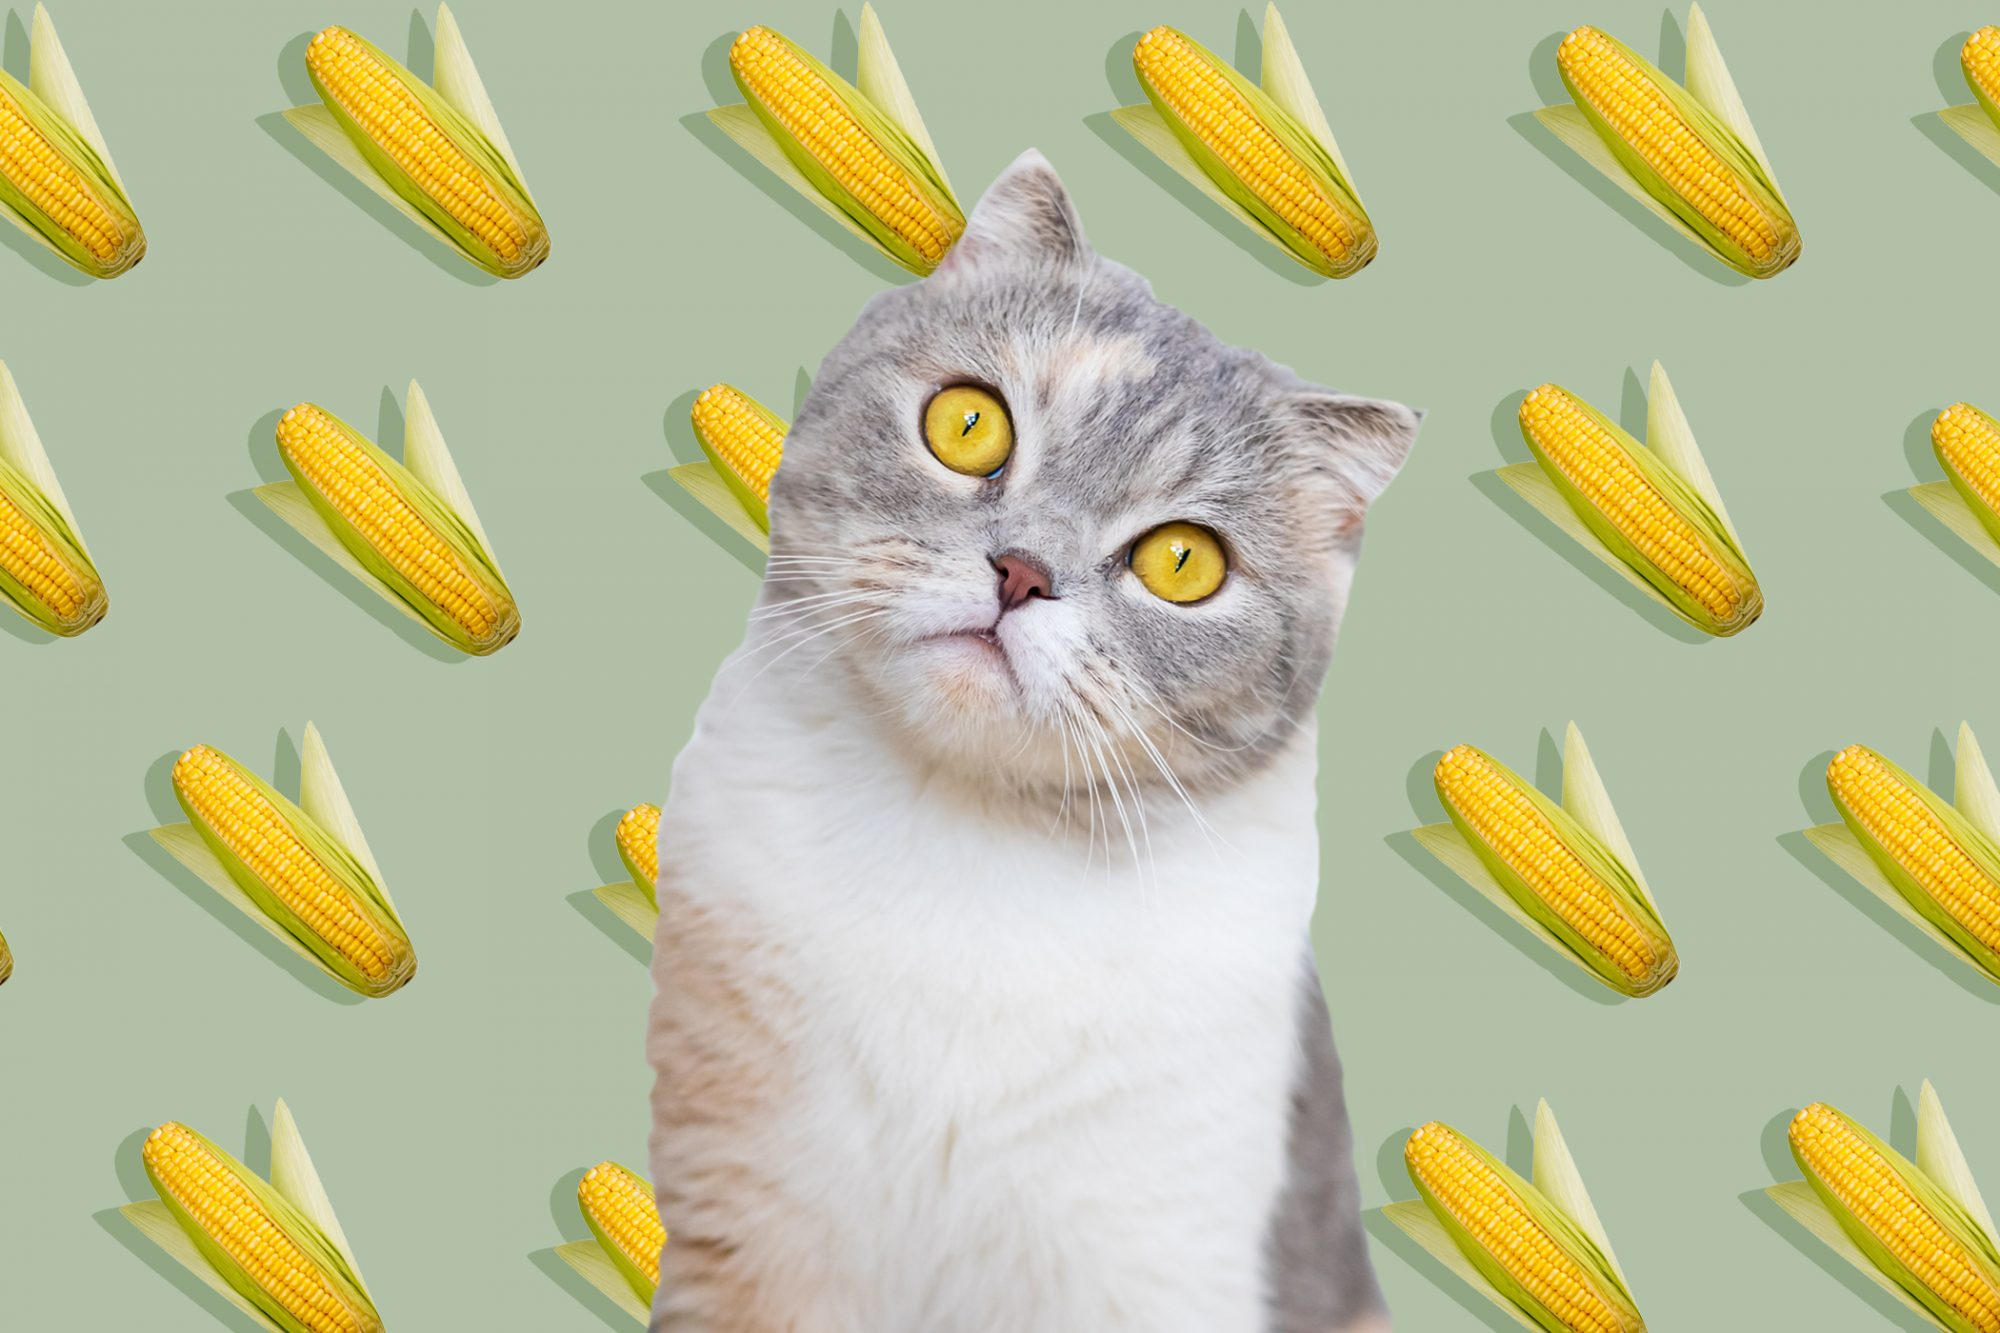 cat in front of background of a pattern of corn on the cob